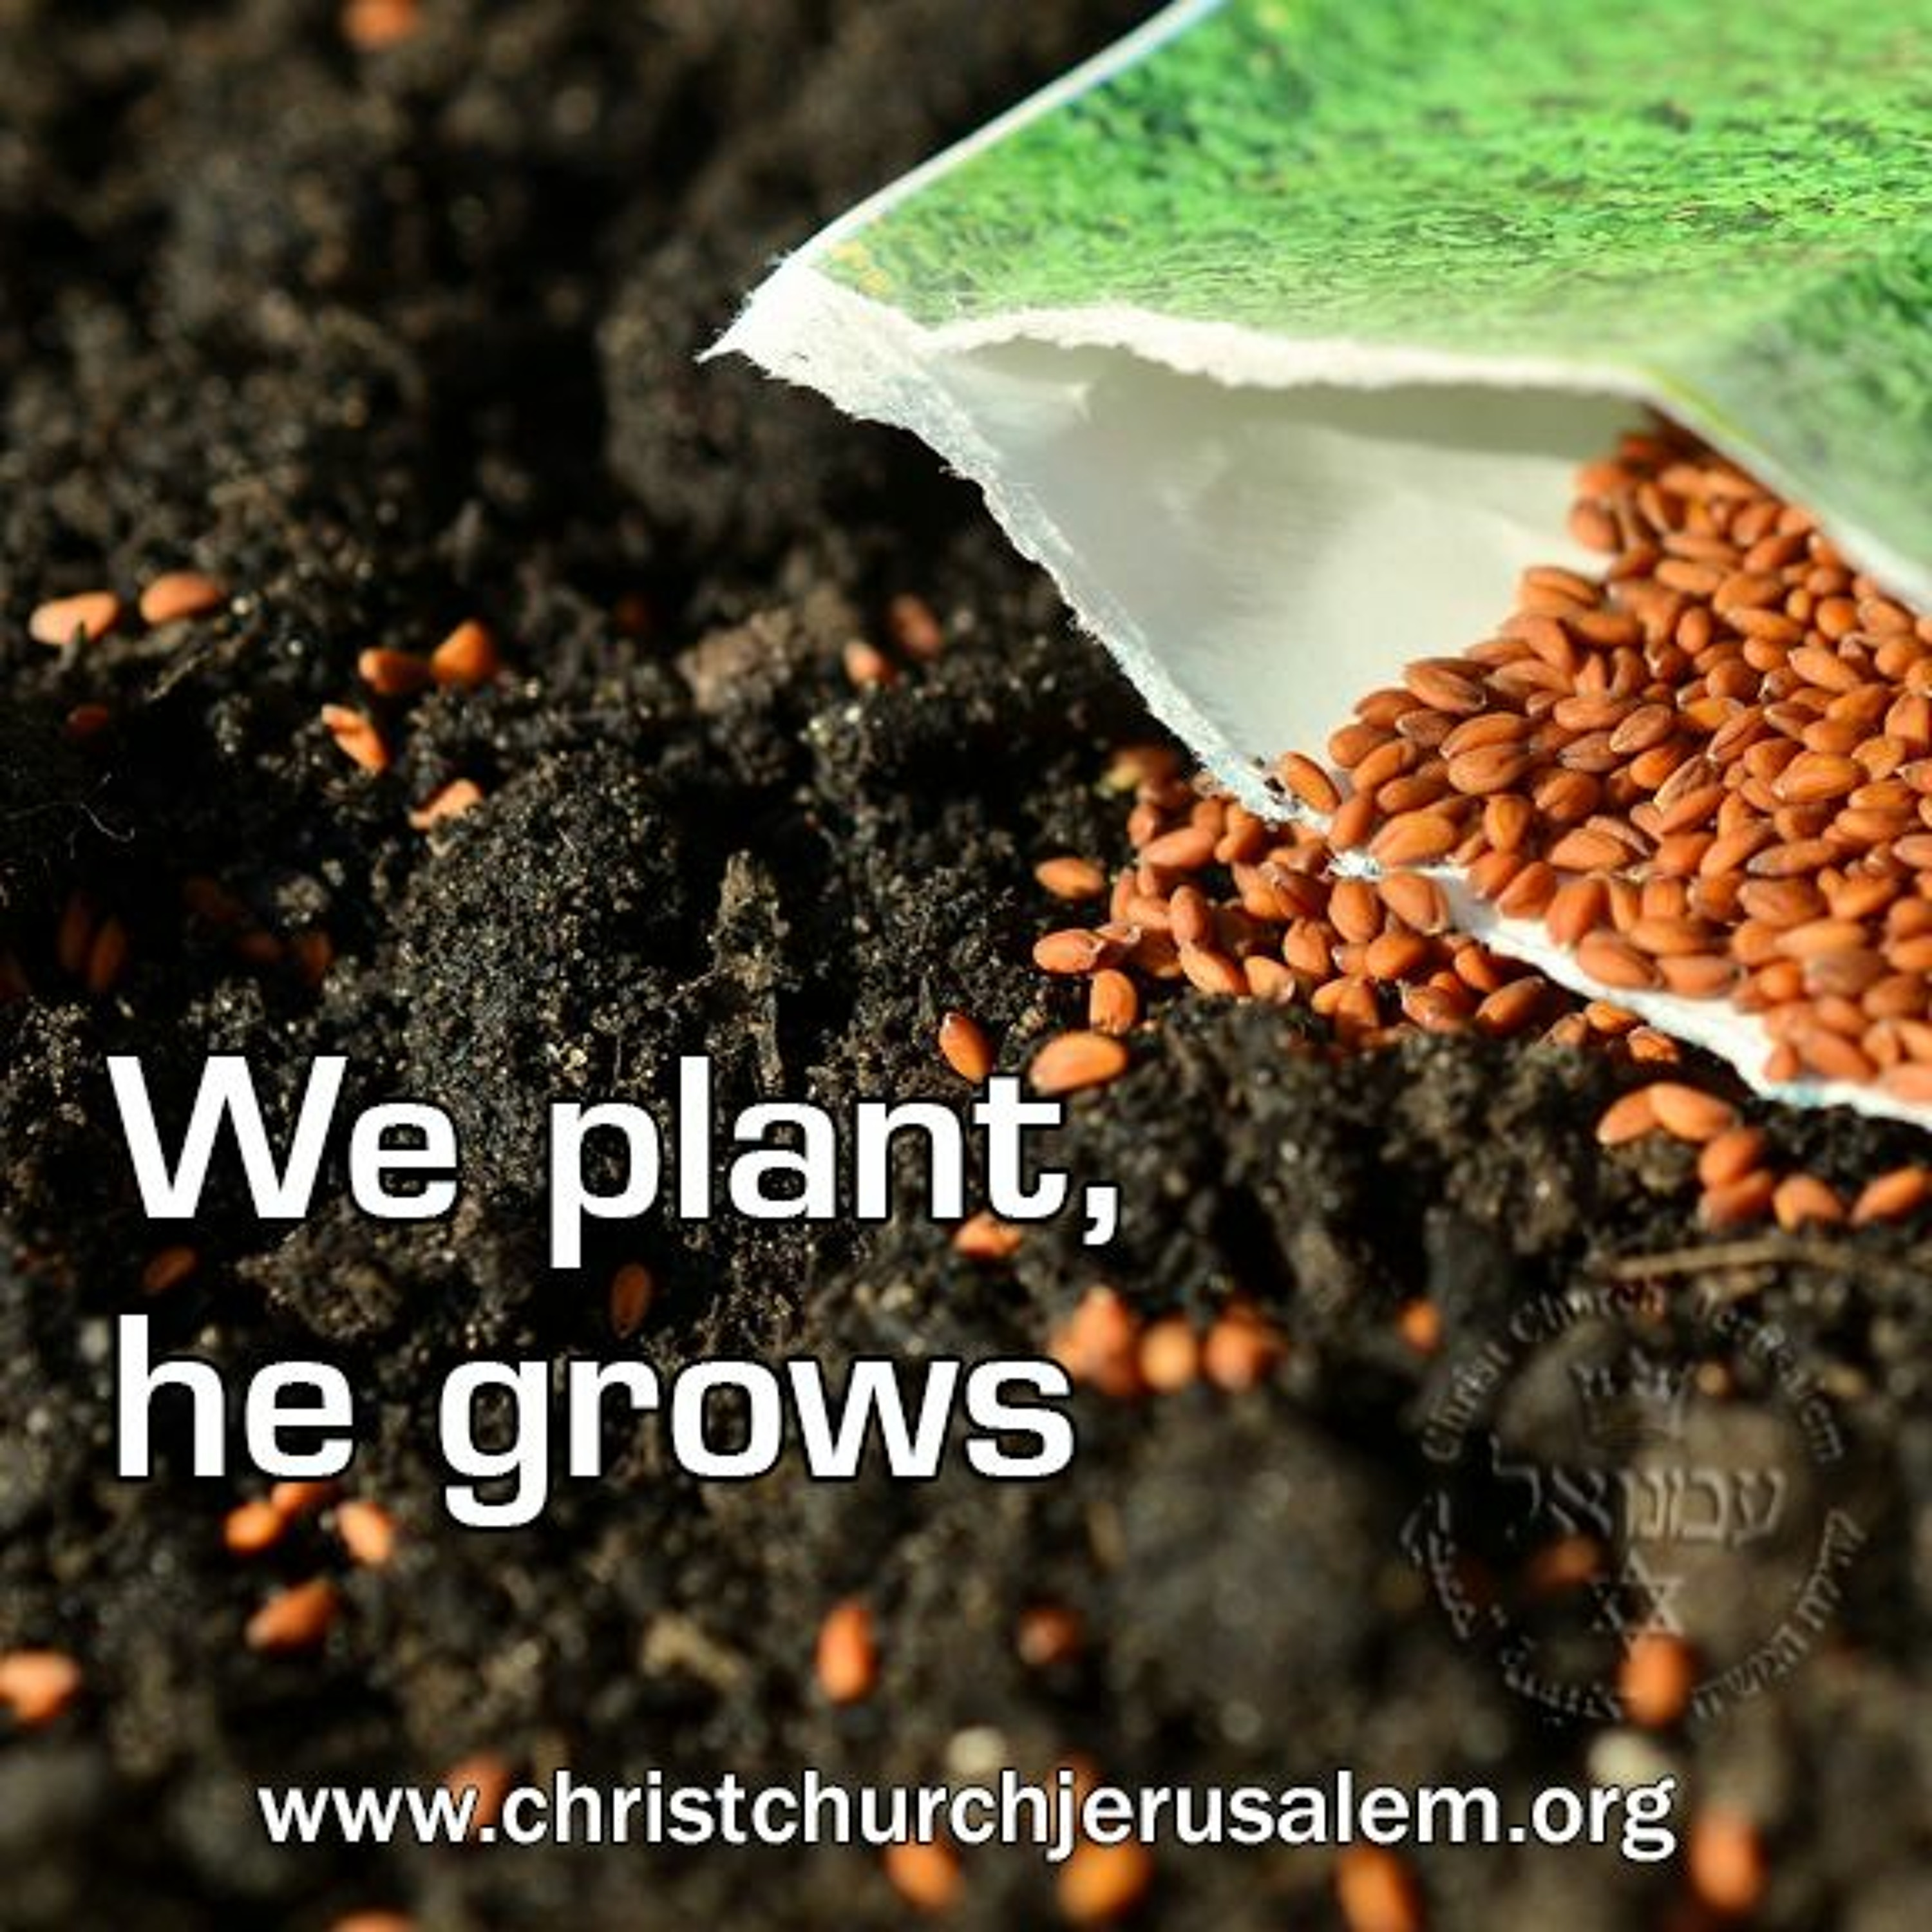 We plant, he grows